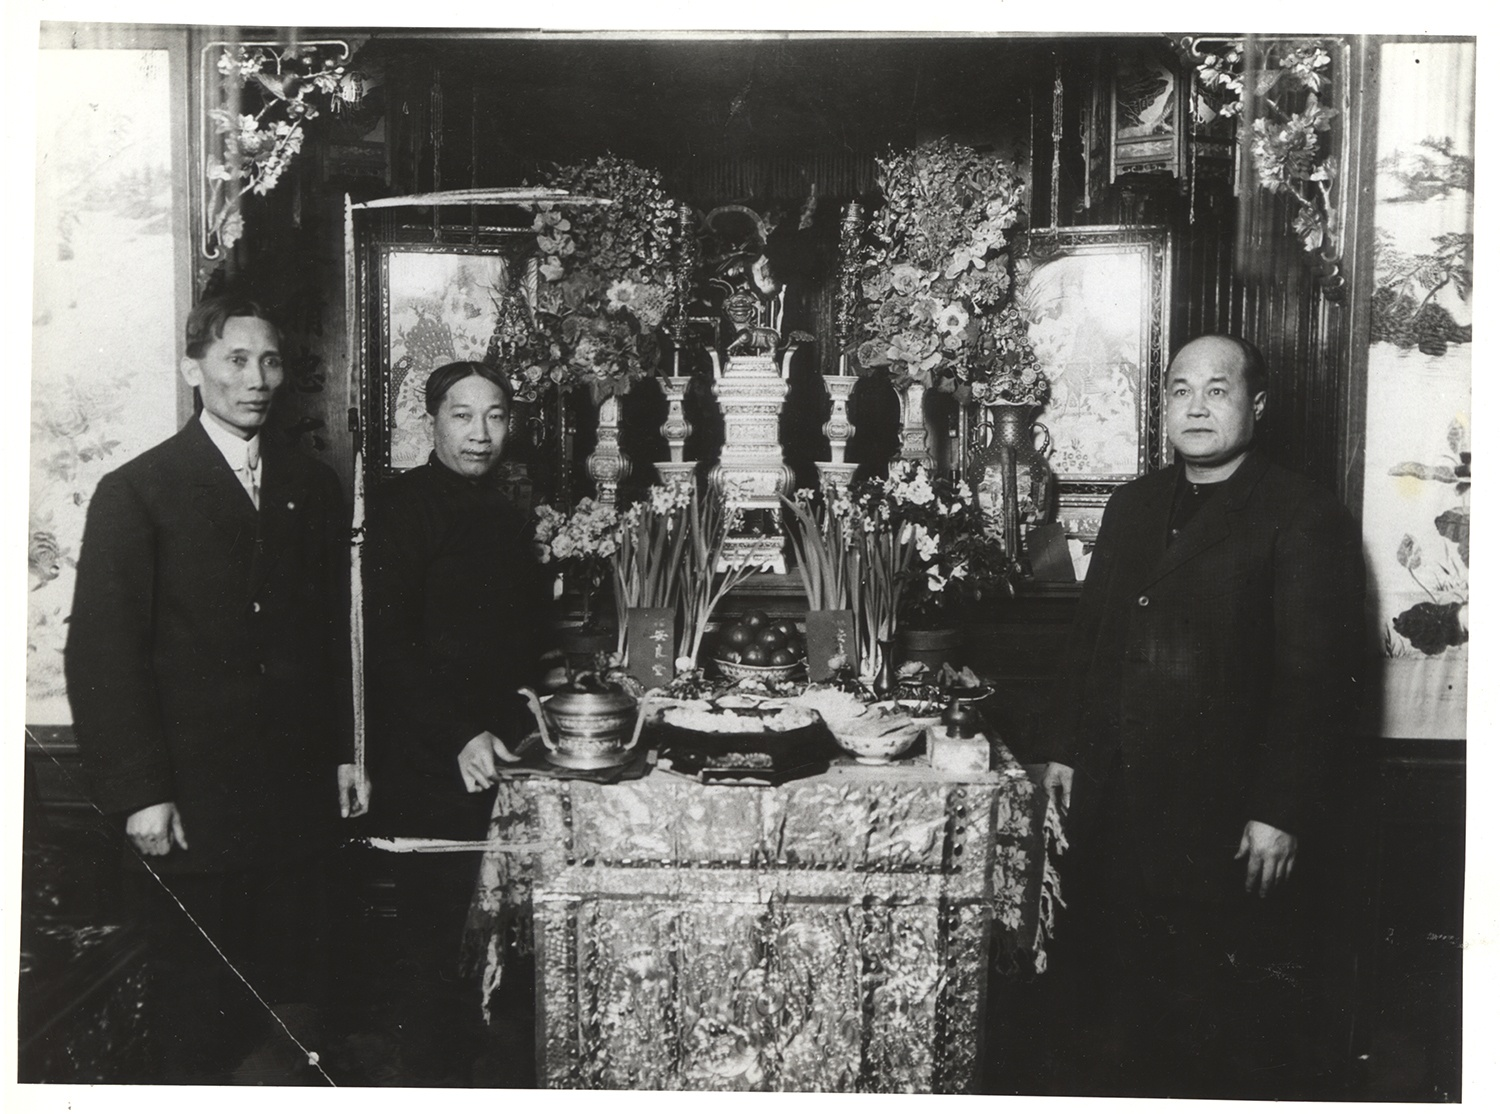 Displaying an altar (possibly a Lunar New Year altar) in Chinatown, 1912. Gift of Elenore Seidenberg, MSP 566, Detre Library & Archives at the History Center.